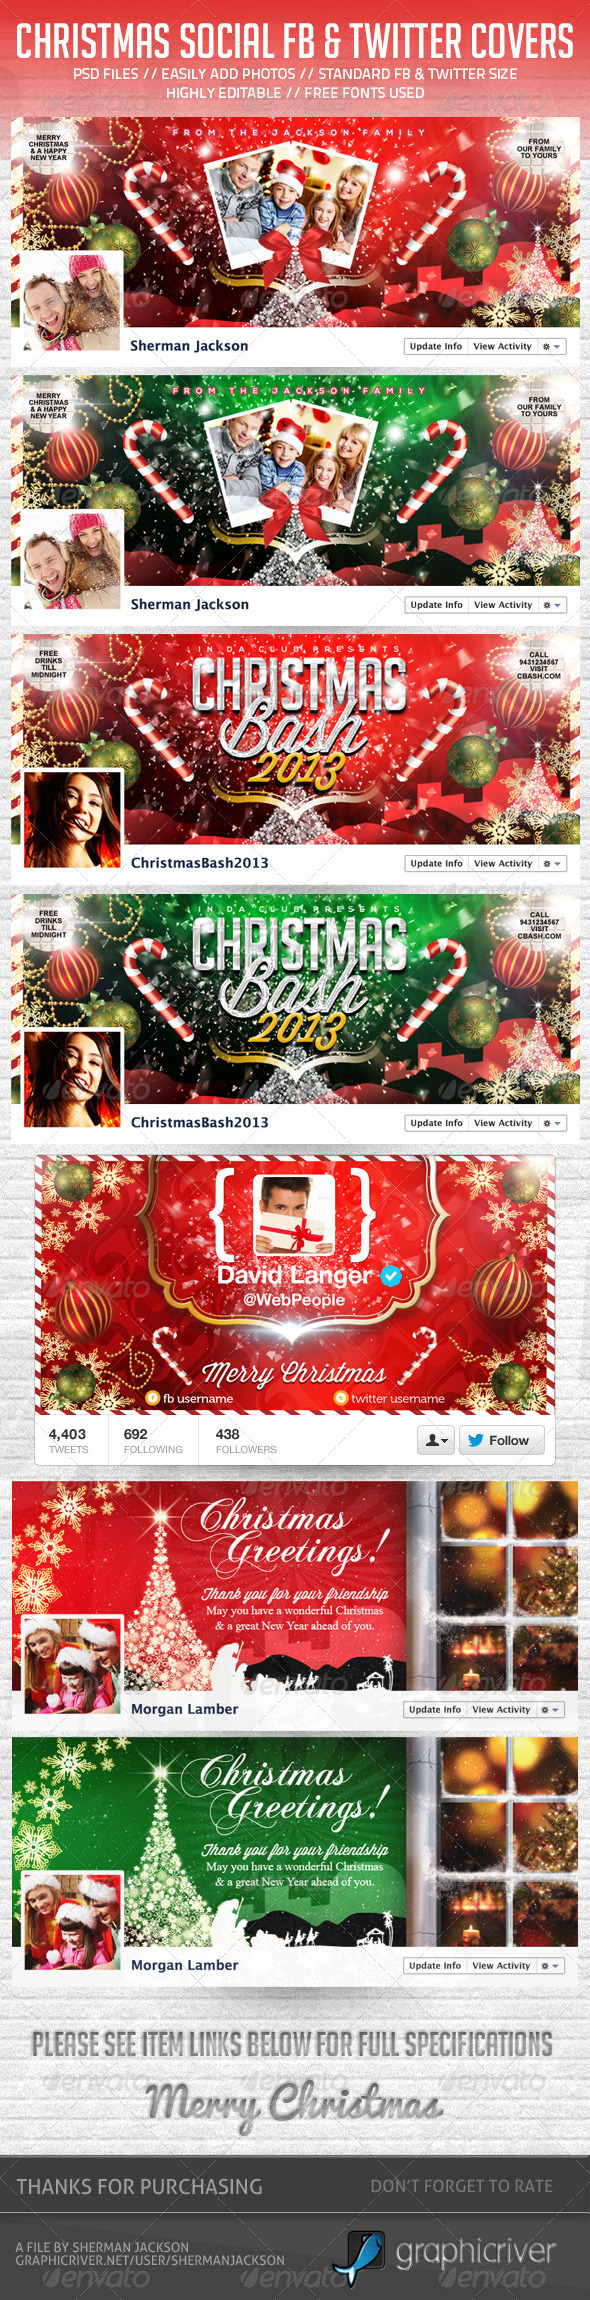 GraphicRiver Christmas Social Facebook & Twitter Pack Bundle 6388602